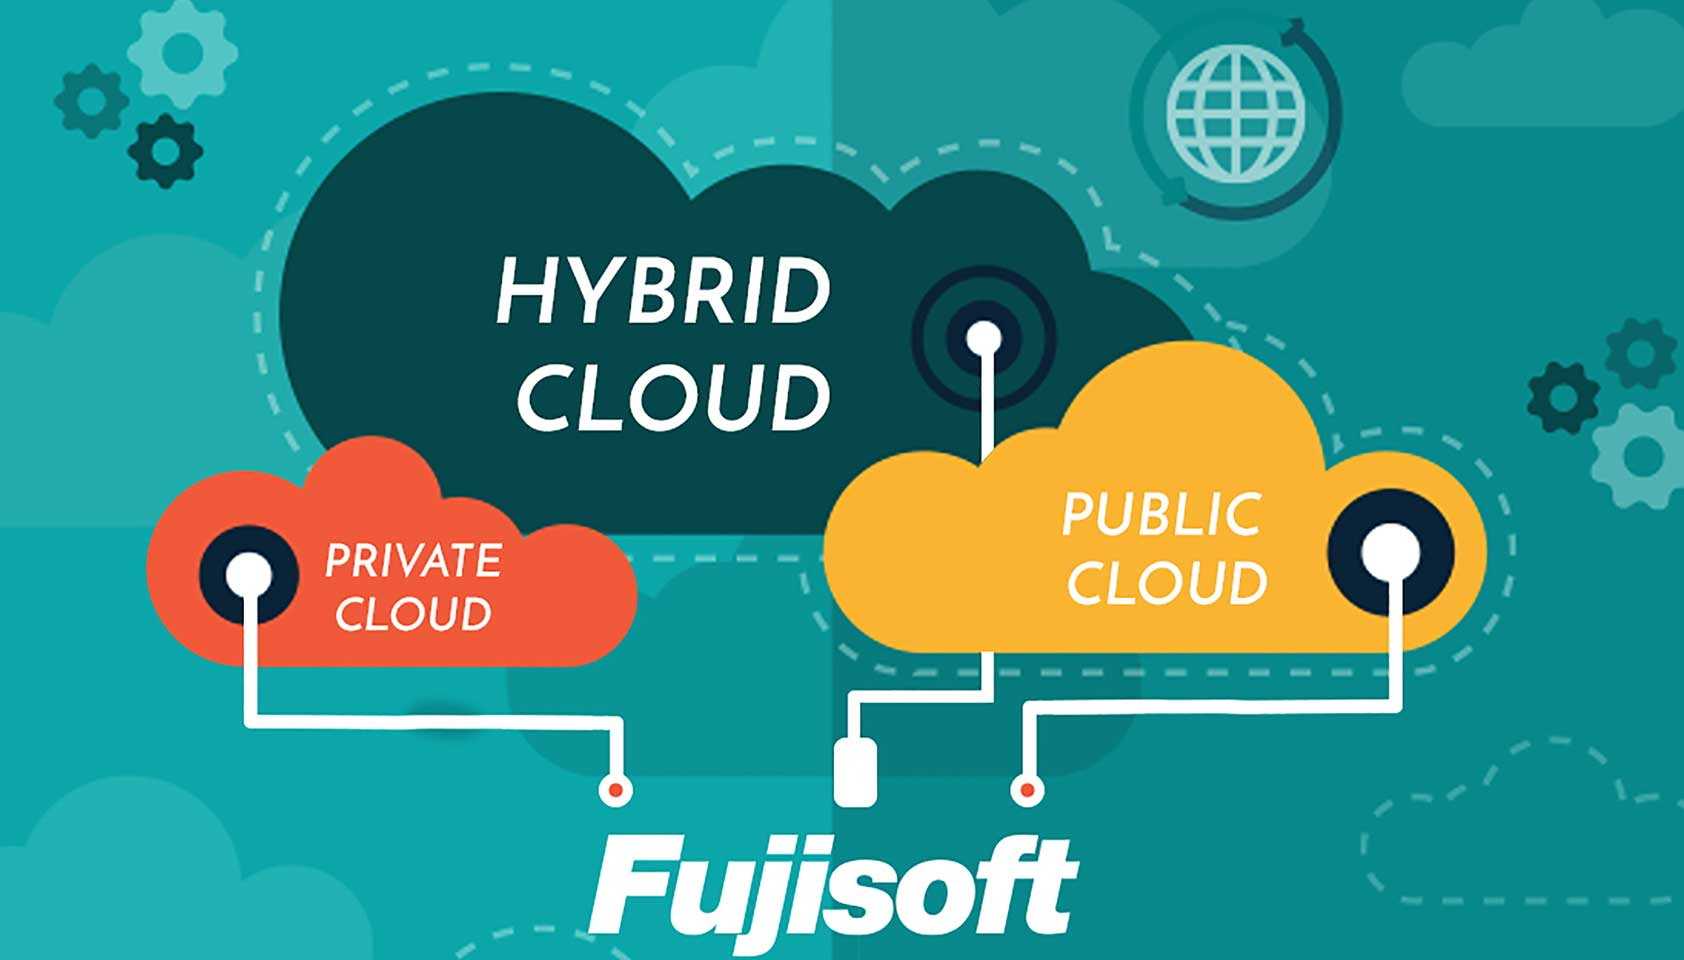 Hybrid-cloud-backup-storage-Dubai